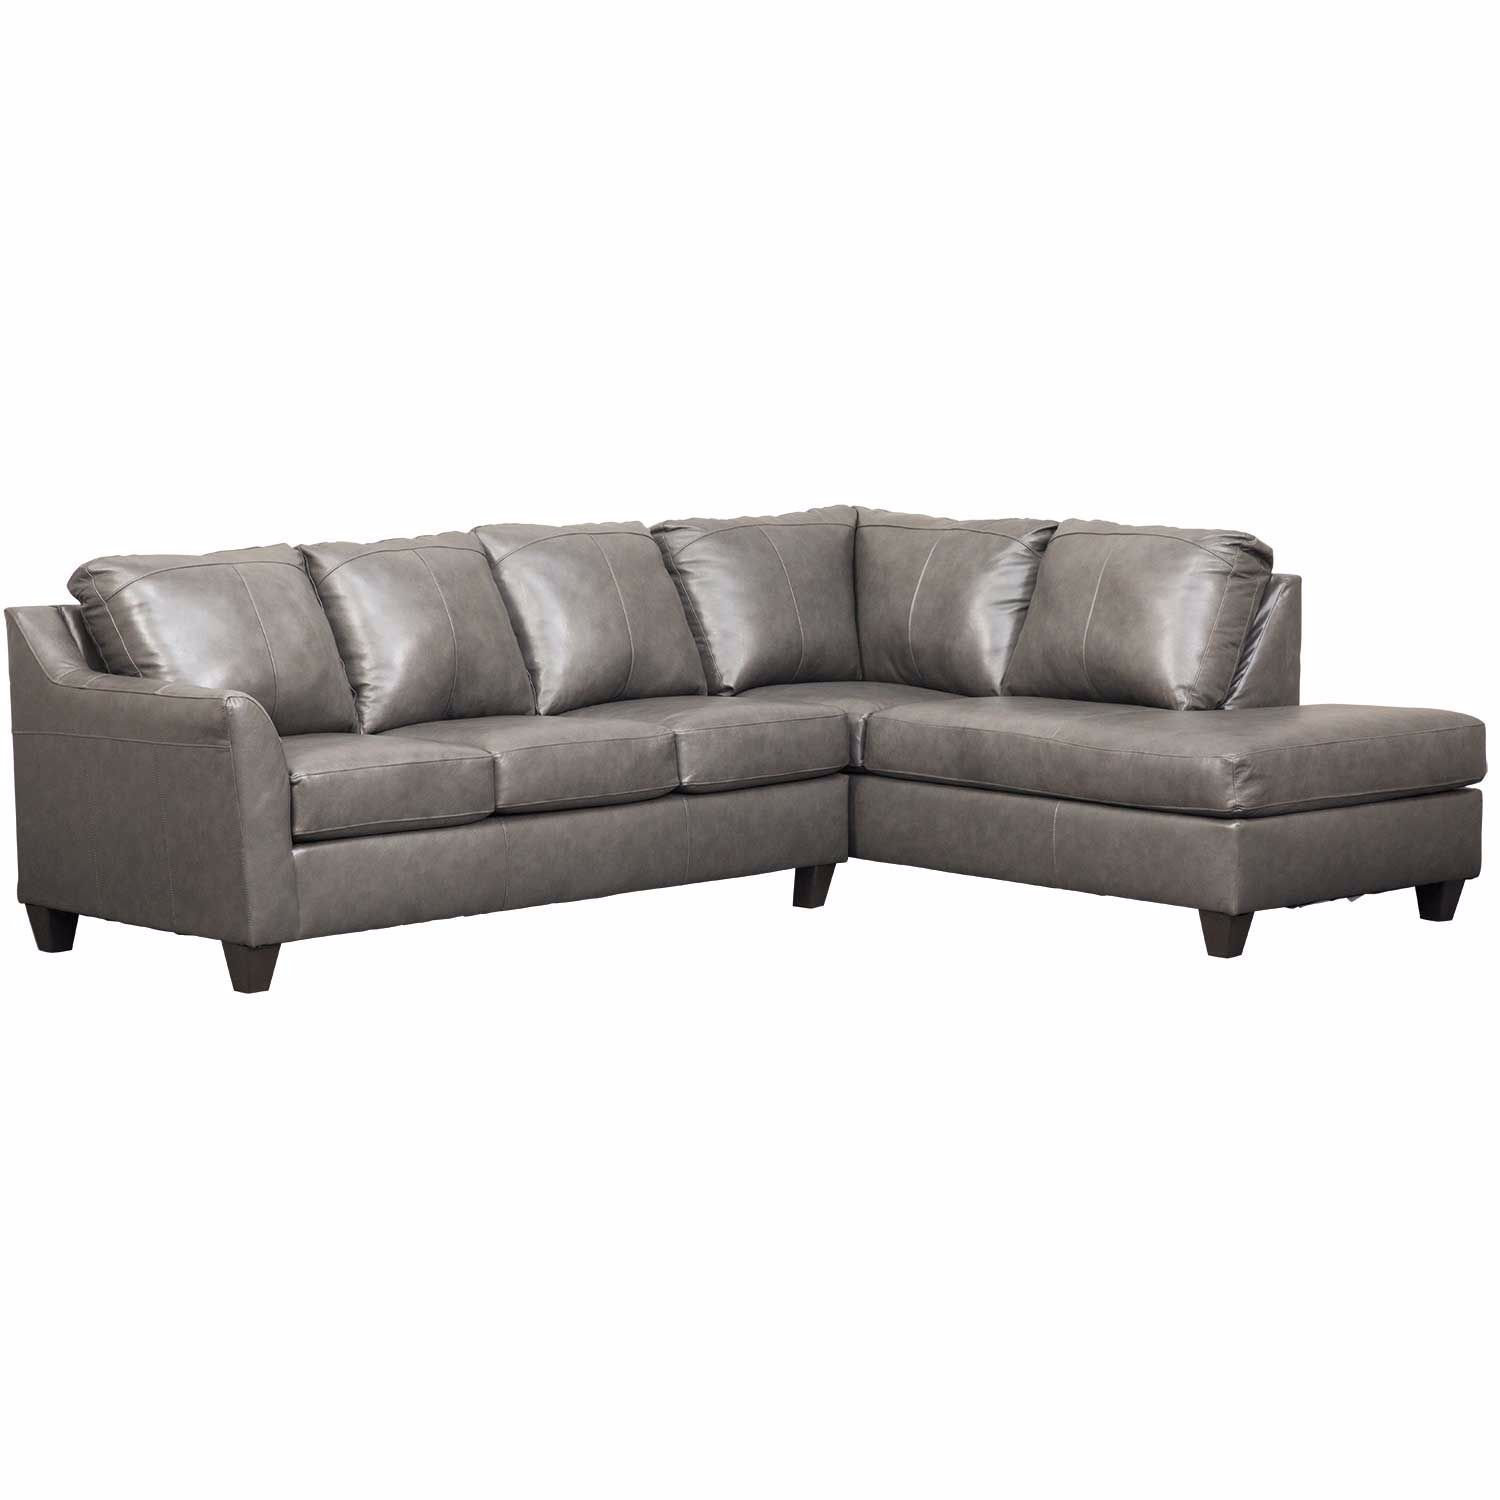 Declan 2 Piece Fog Leather Sectional w/RAF Chaise